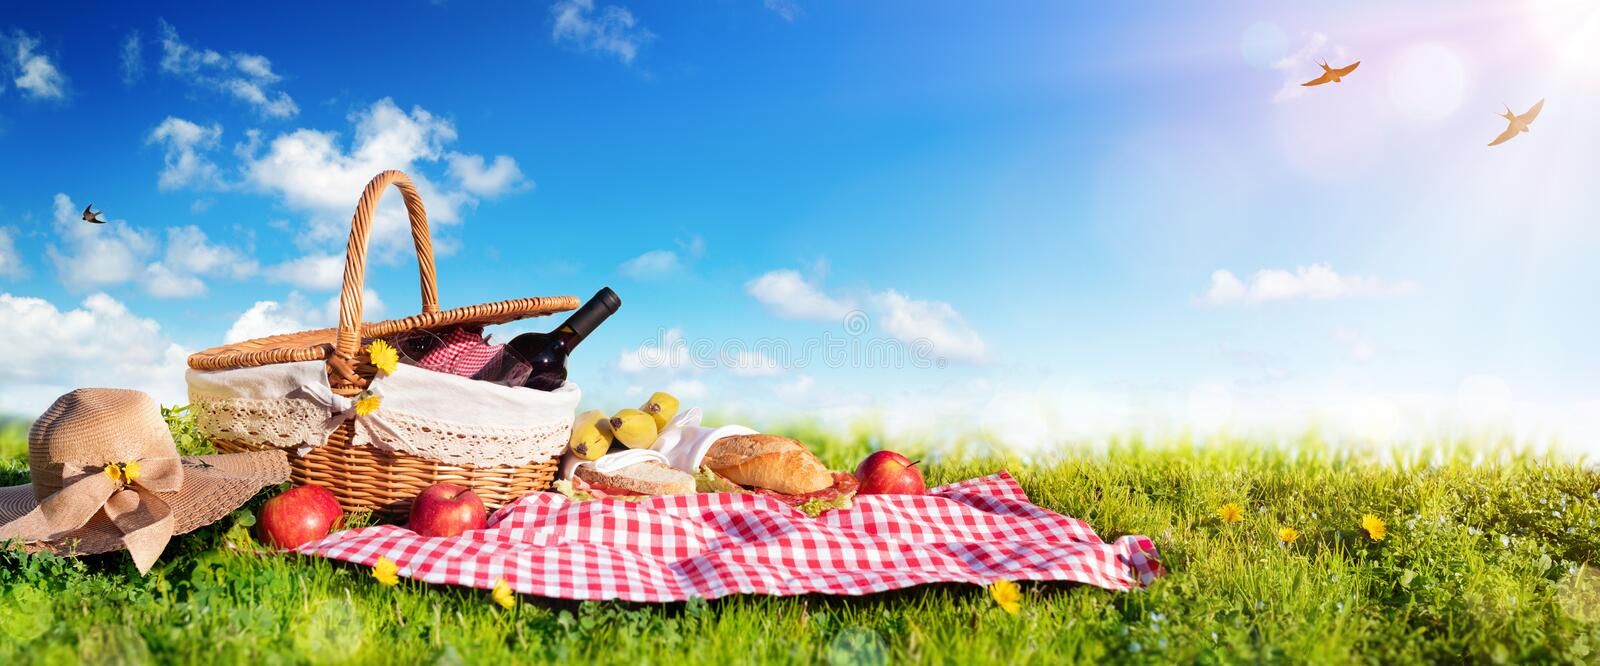 Picnic - Basket With Bread And Wine On Meadow stock photography